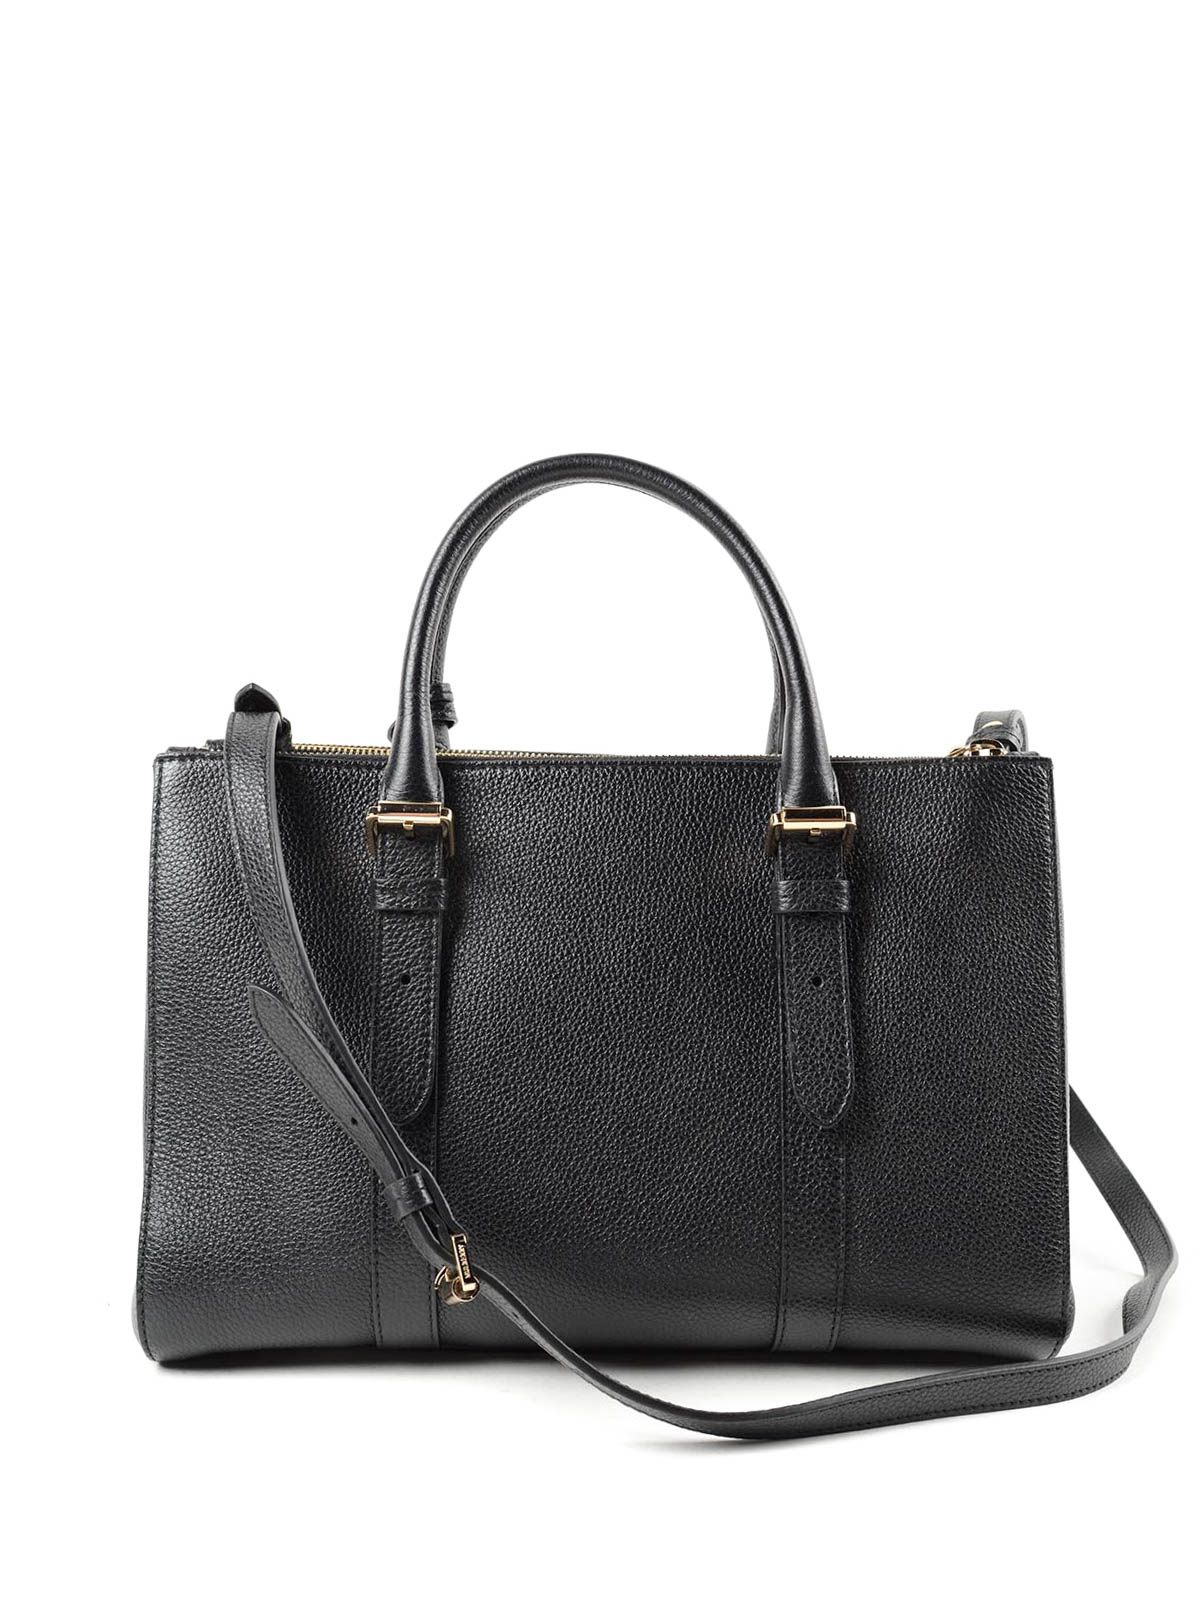 e5c040a1fdf1 Mulberry - Small Bayswater tote - totes bags - HH2840205 .